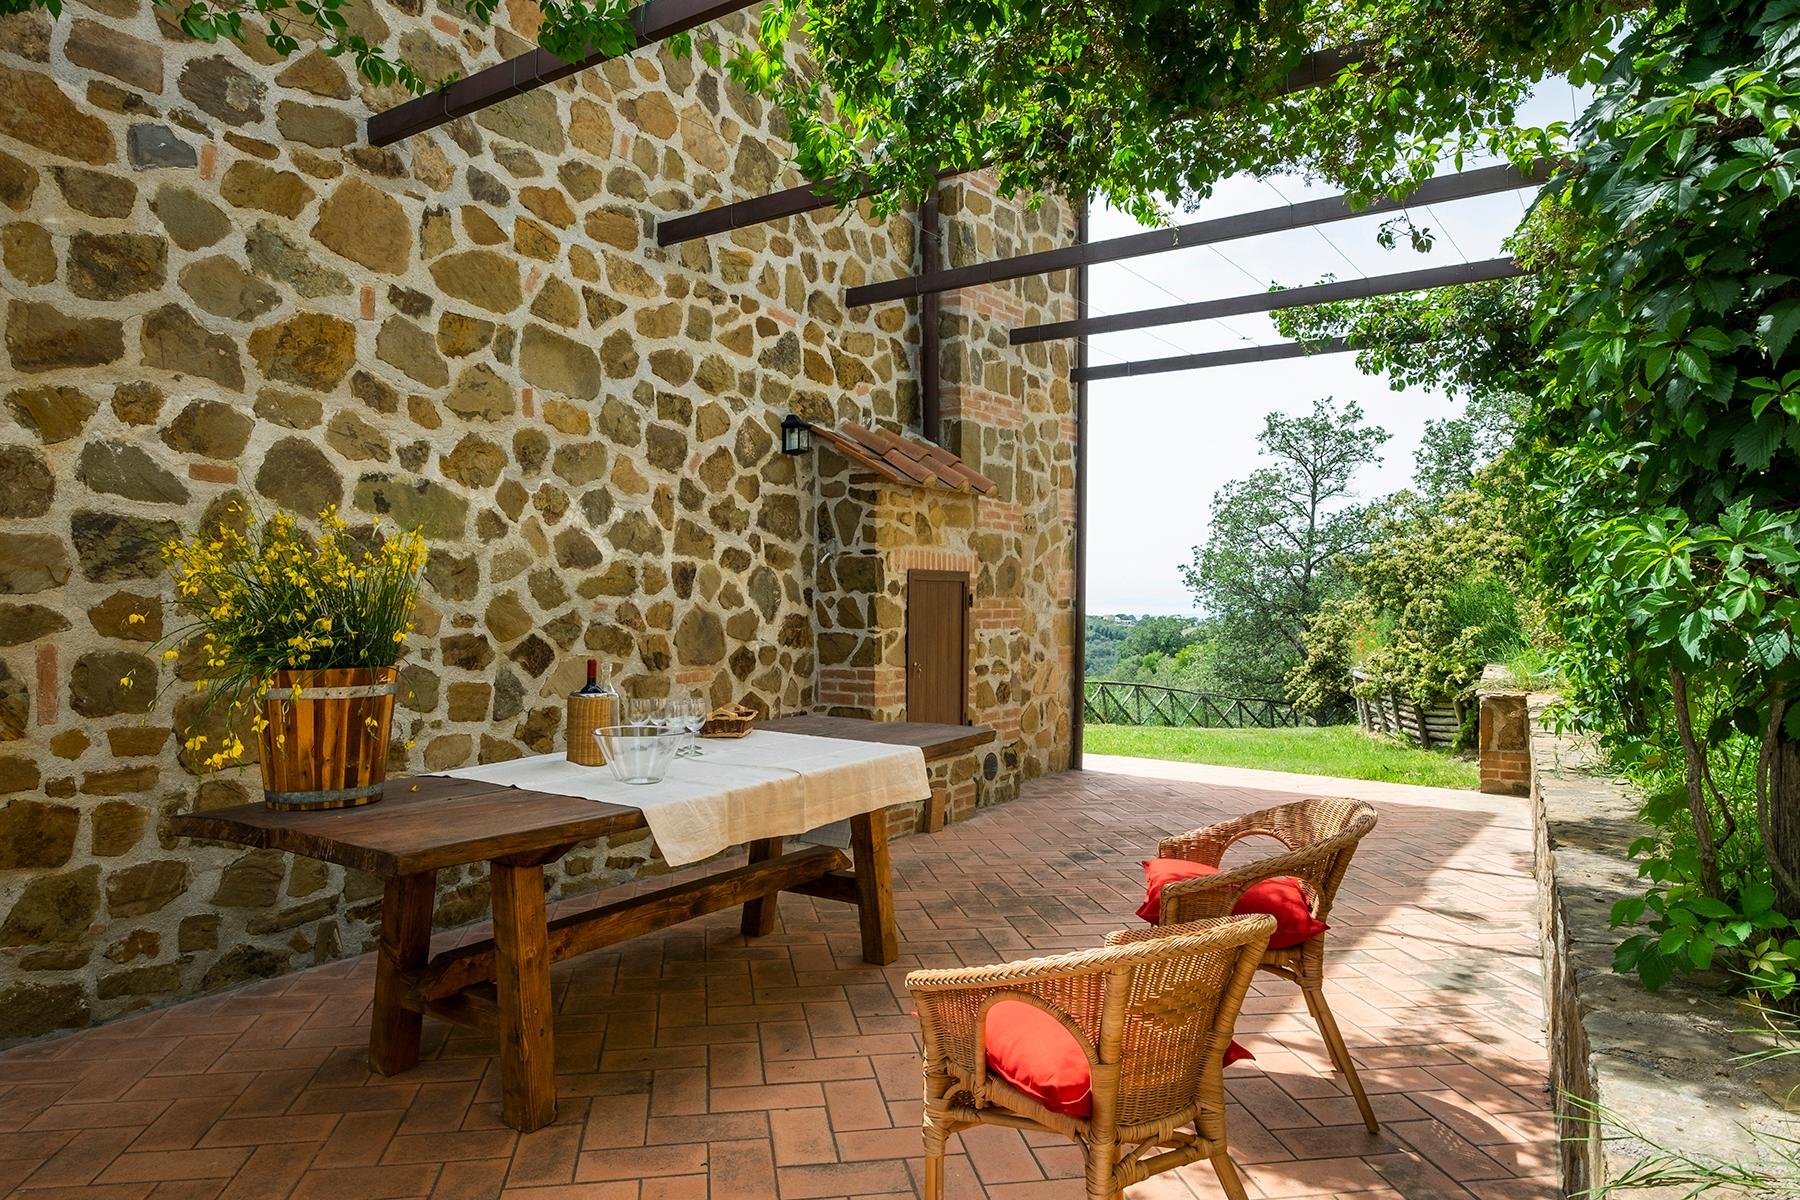 Luxury stone-house in Maremma - 10